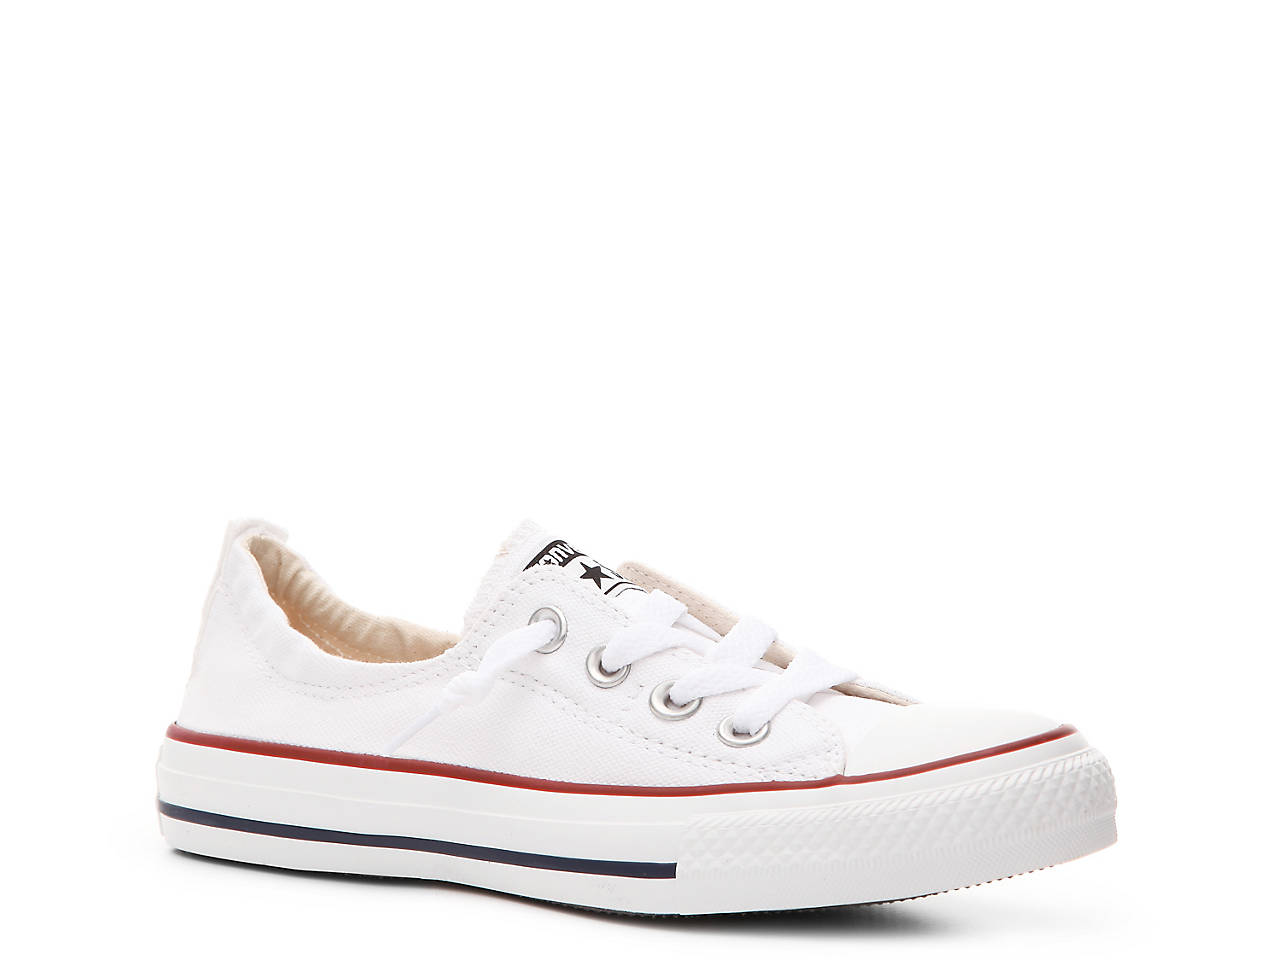 84efcce1e710 Converse Chuck Taylor All Star Shoreline Slip-On Sneaker - Women s ...